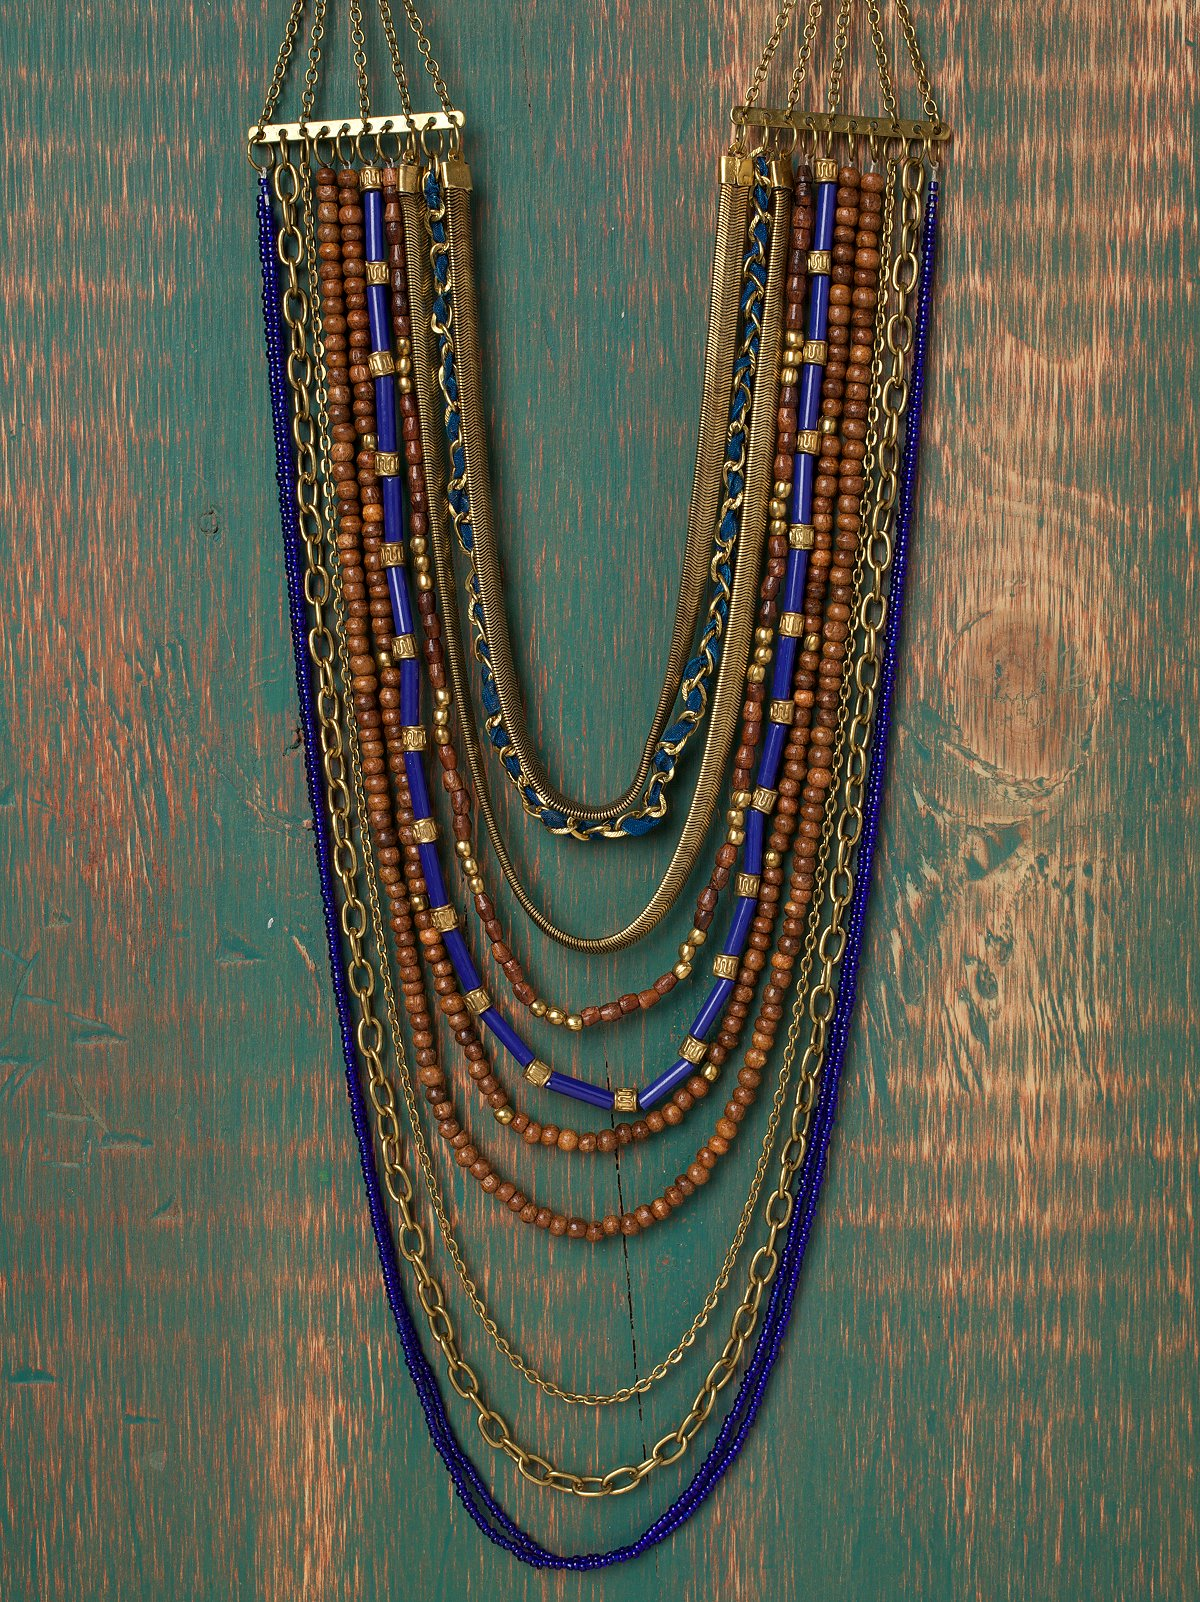 Cleo's Layered Necklace